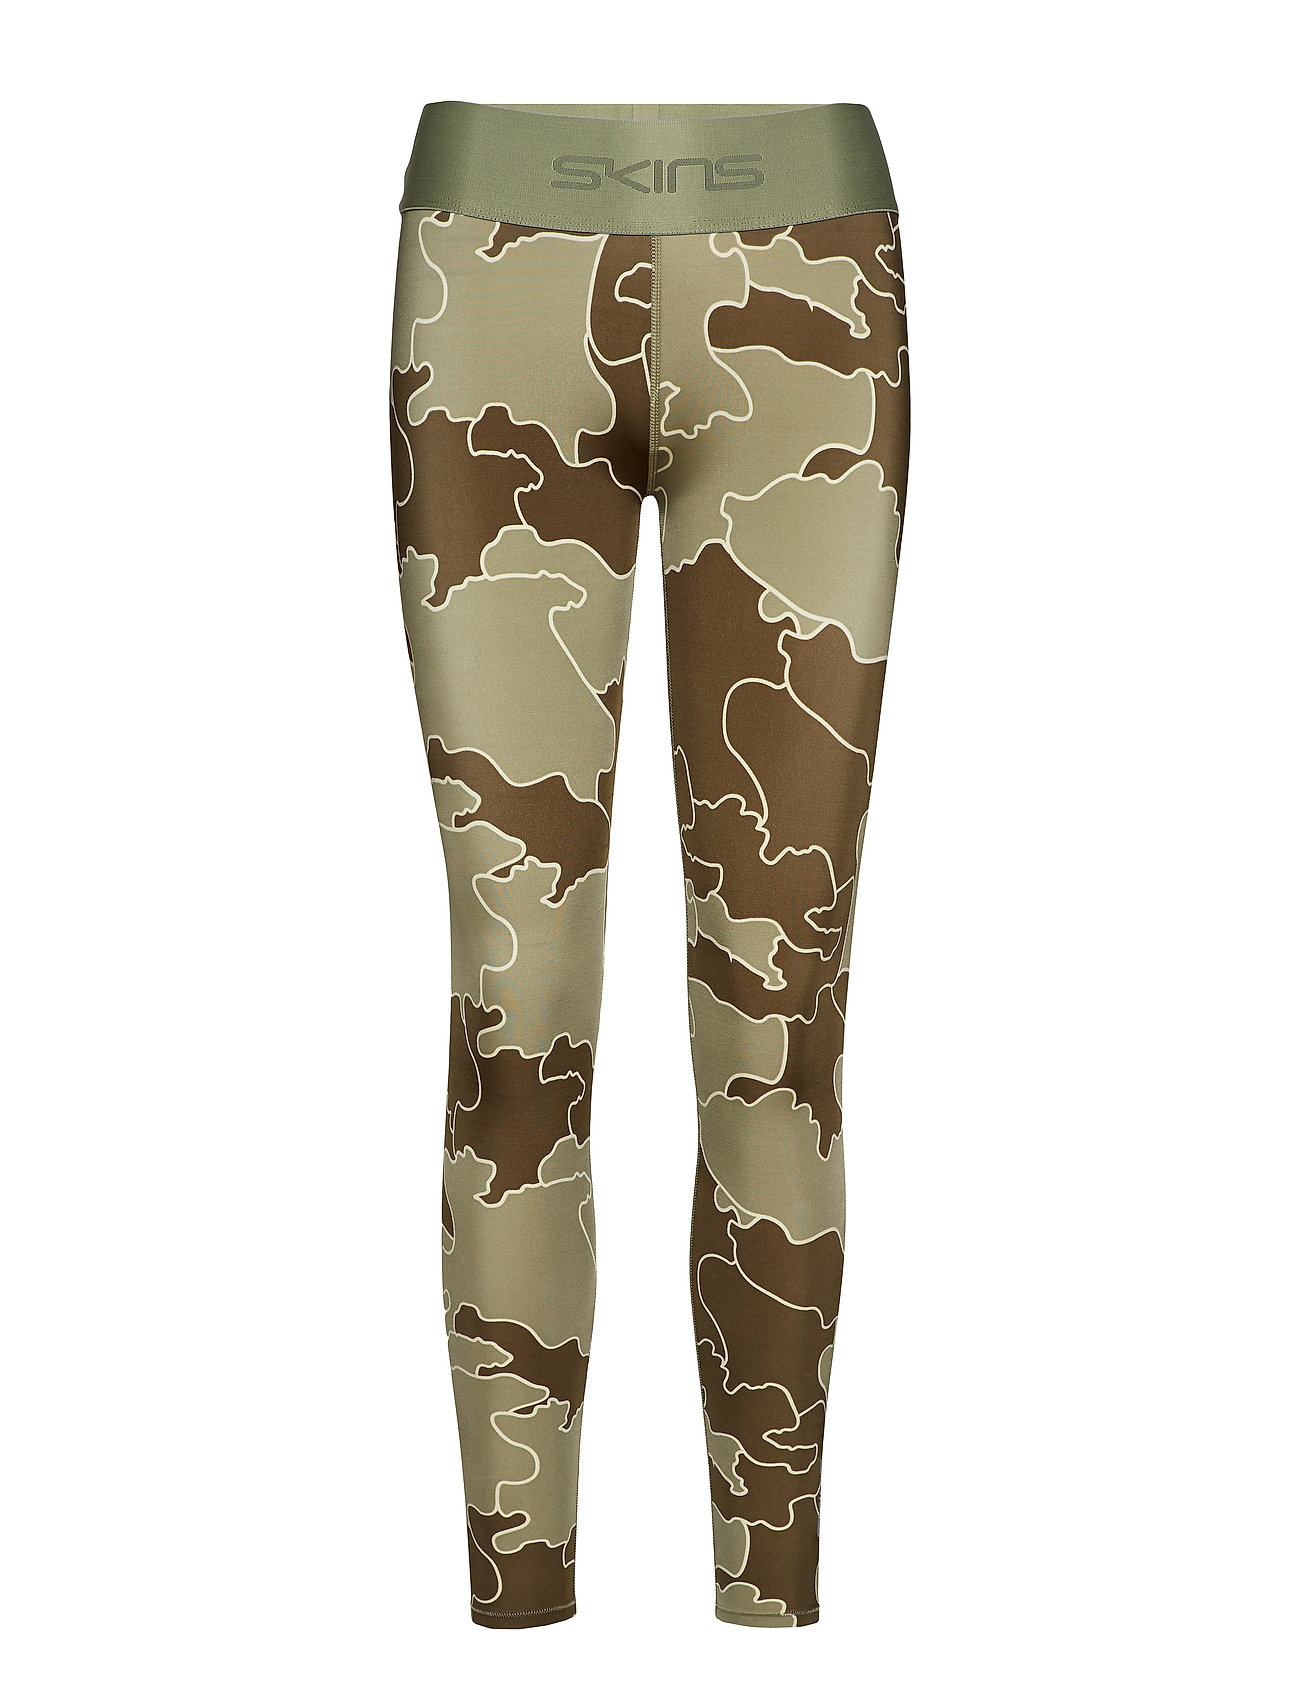 Skins DNAmic Primary Womens Long Tights - MYRIAD OF COASTLINES OLIVE GREEN